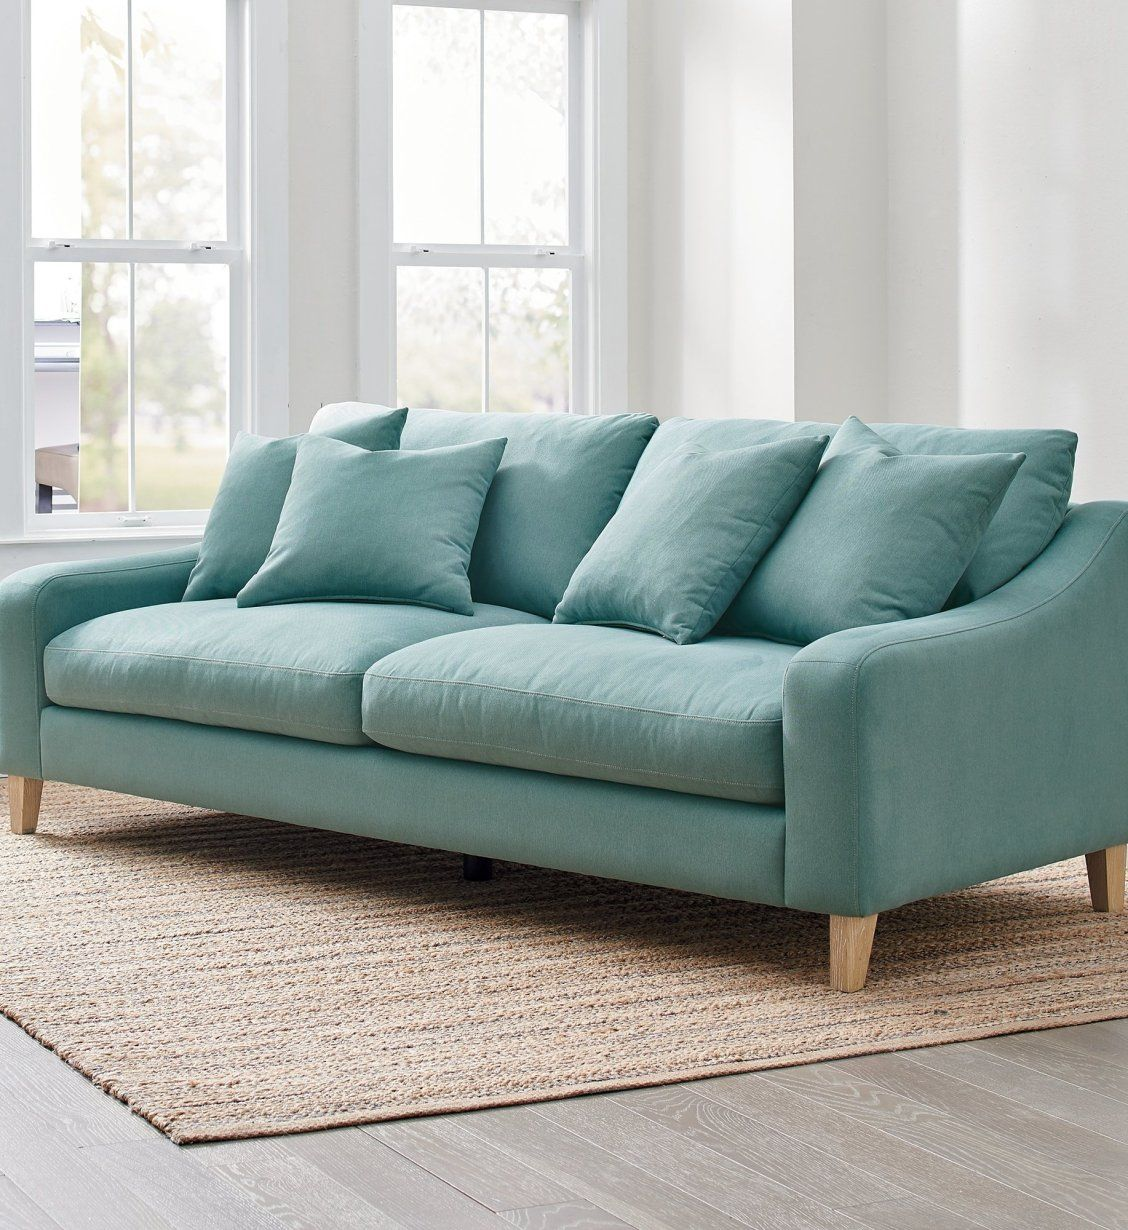 Kye Sofa Grandin Road Furniture Furniture Collection Sofa Colors